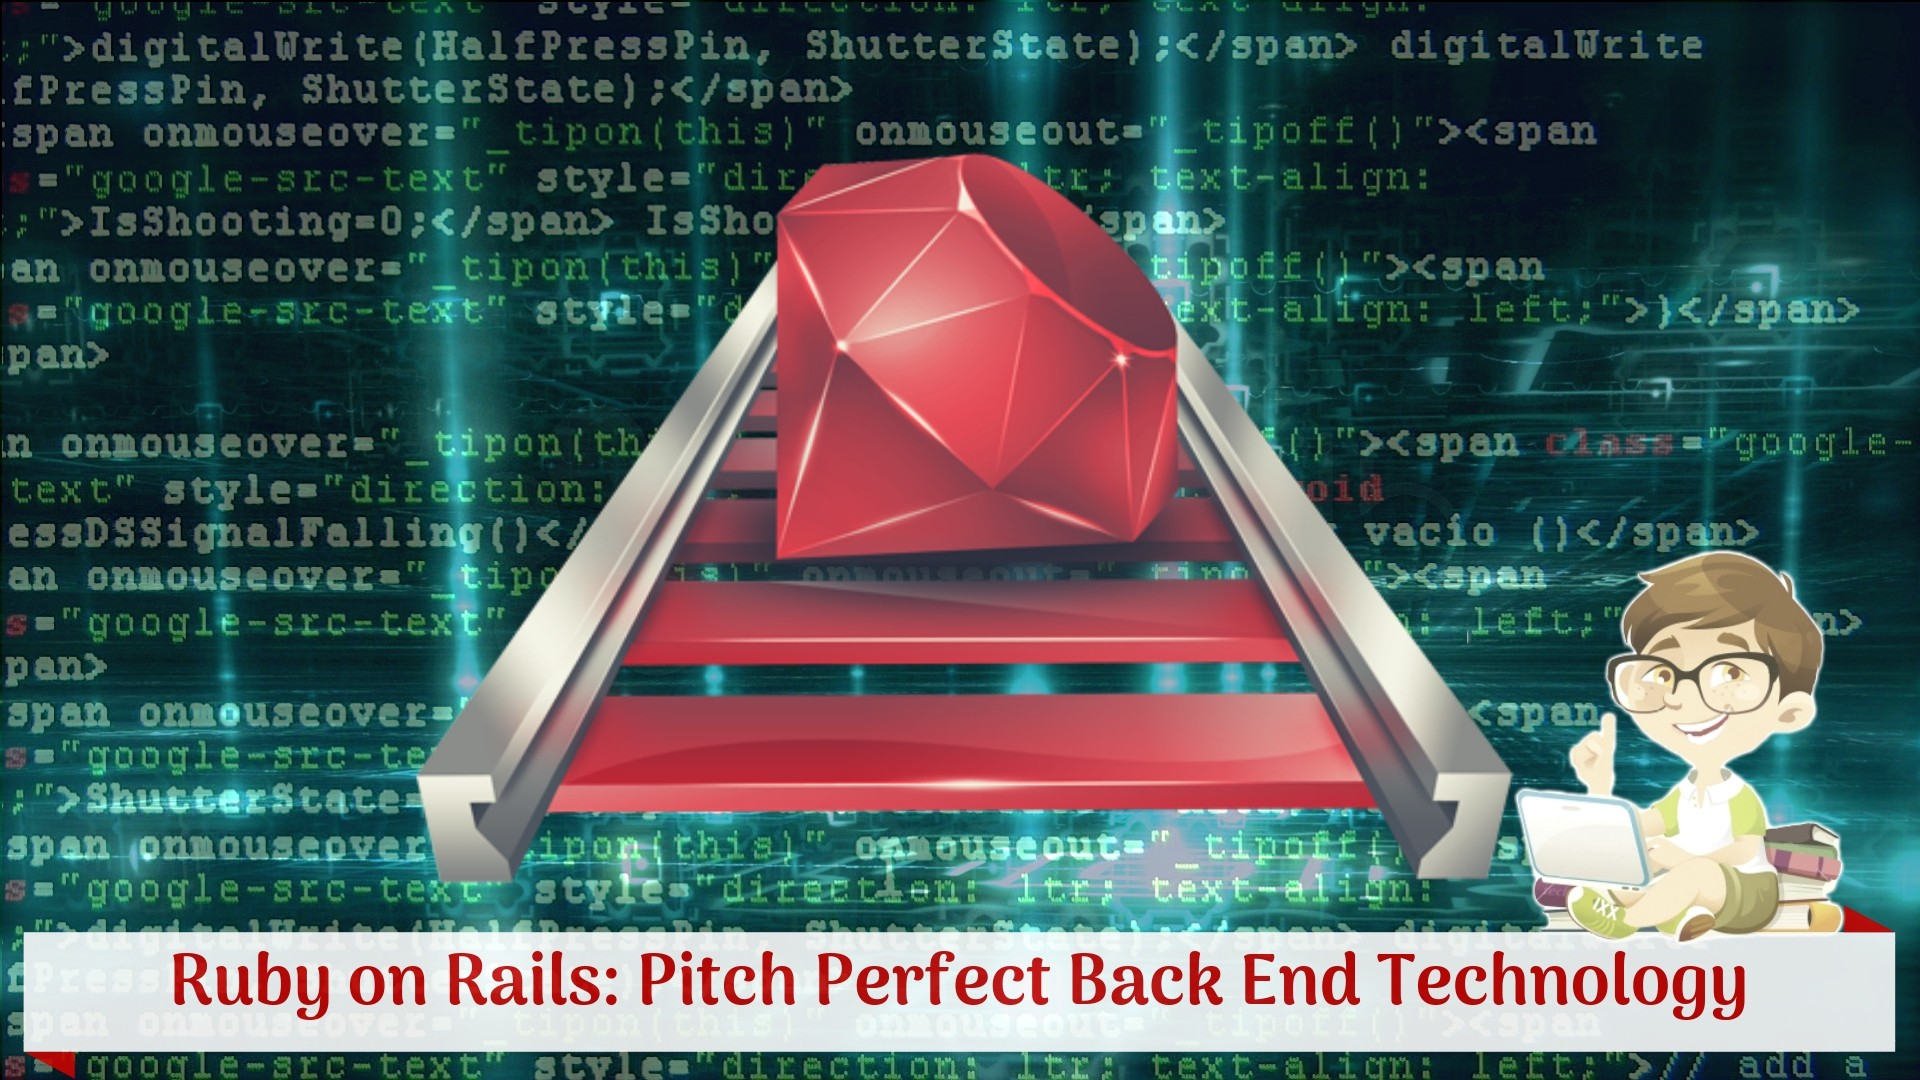 Why is Ruby on Rails A Pitch Perfect Back End Technology?